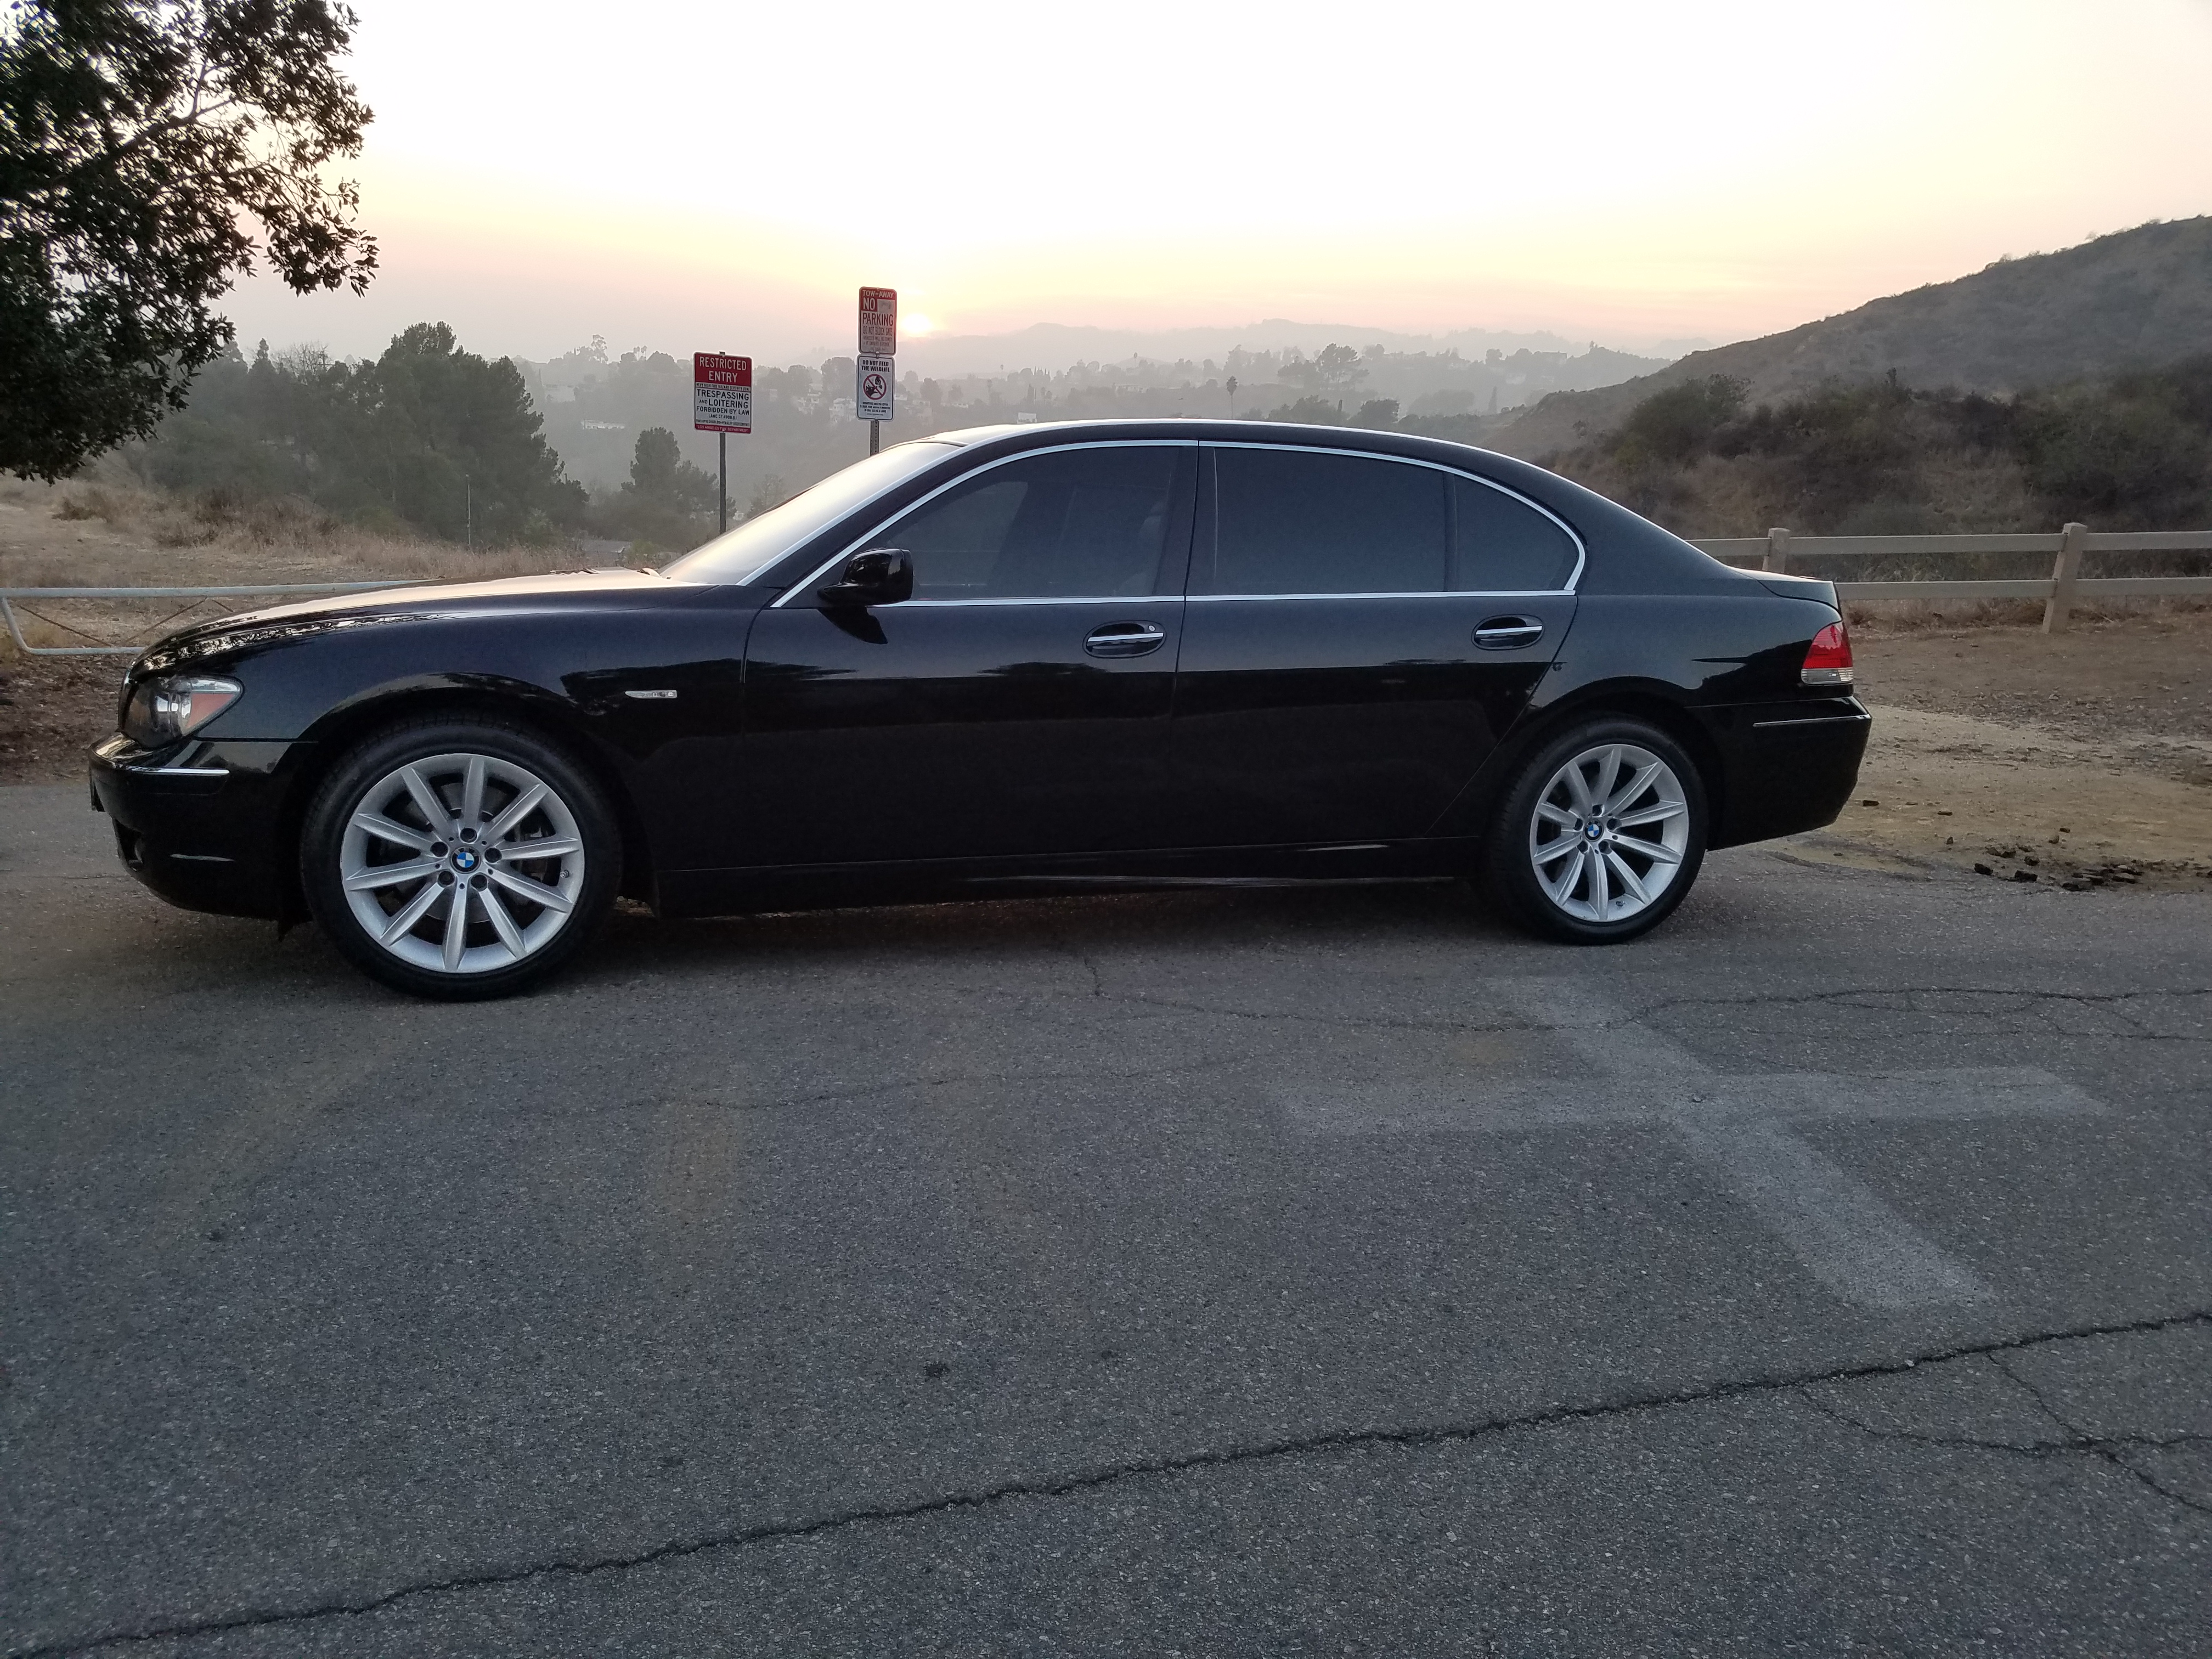 Used 2008 BMW 7 Series For Sale in Los Angeles, CA Hid Wiring Color Diag Bmw on